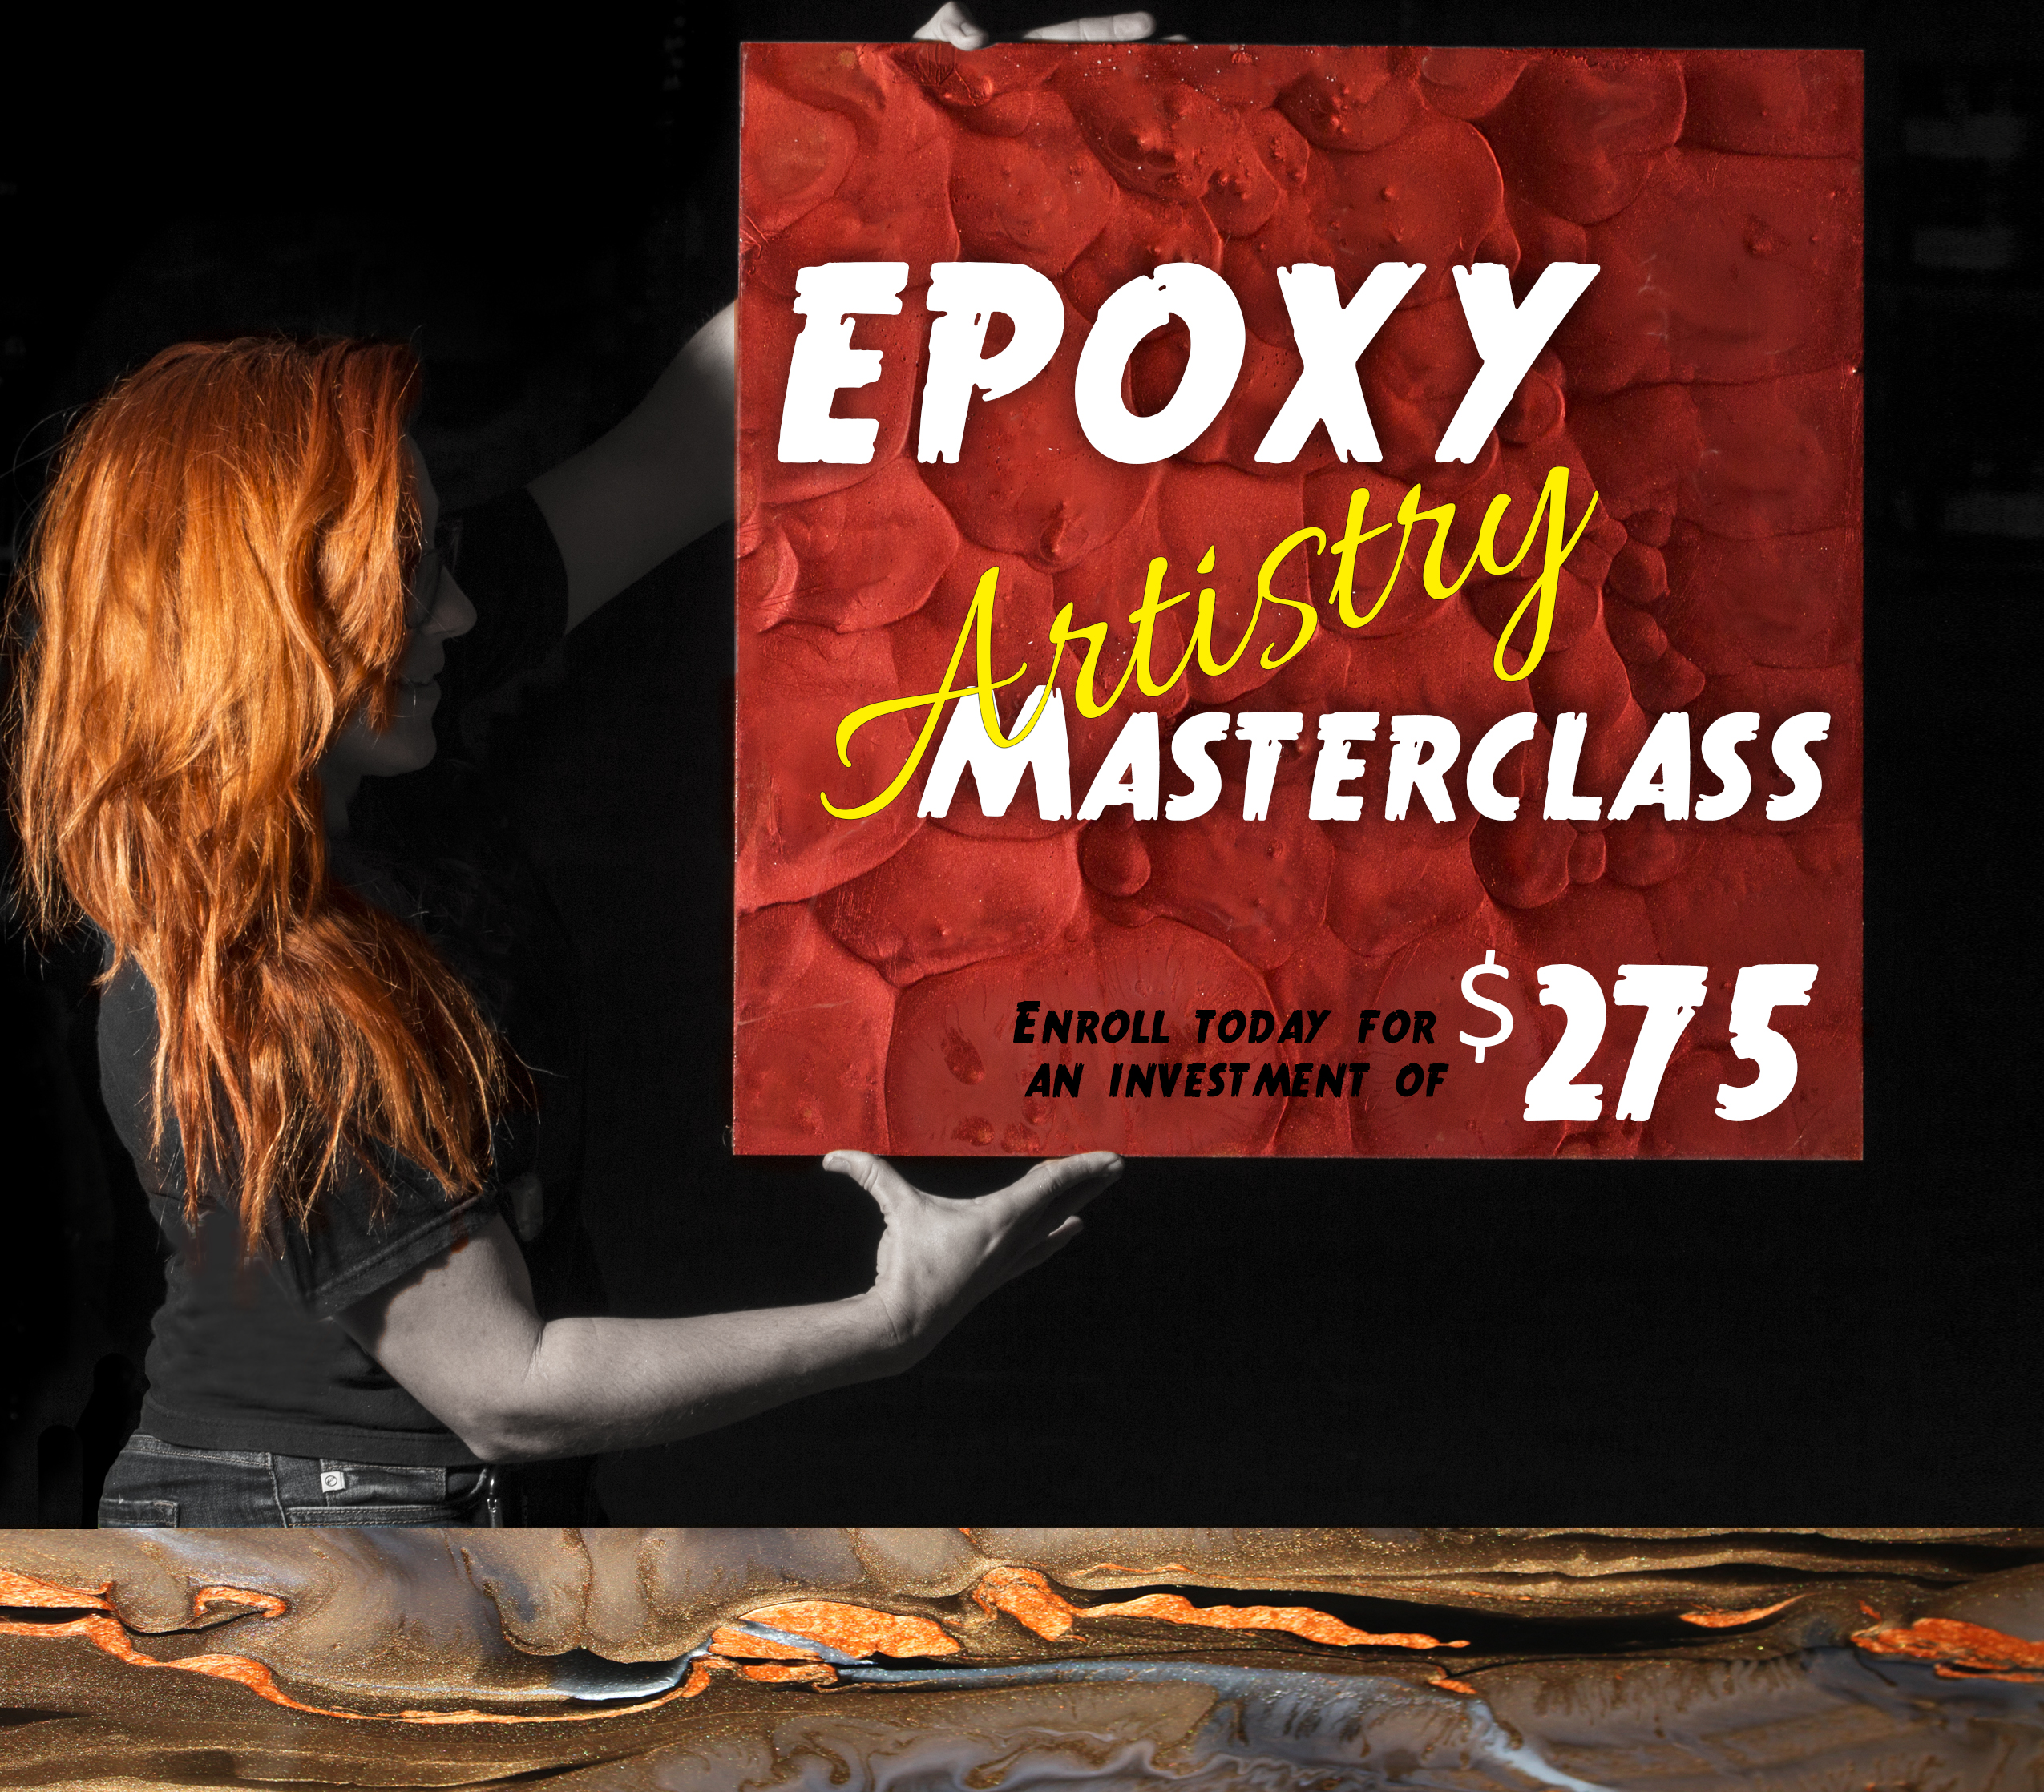 Epoxy Masterclass – Super Stone, Inc